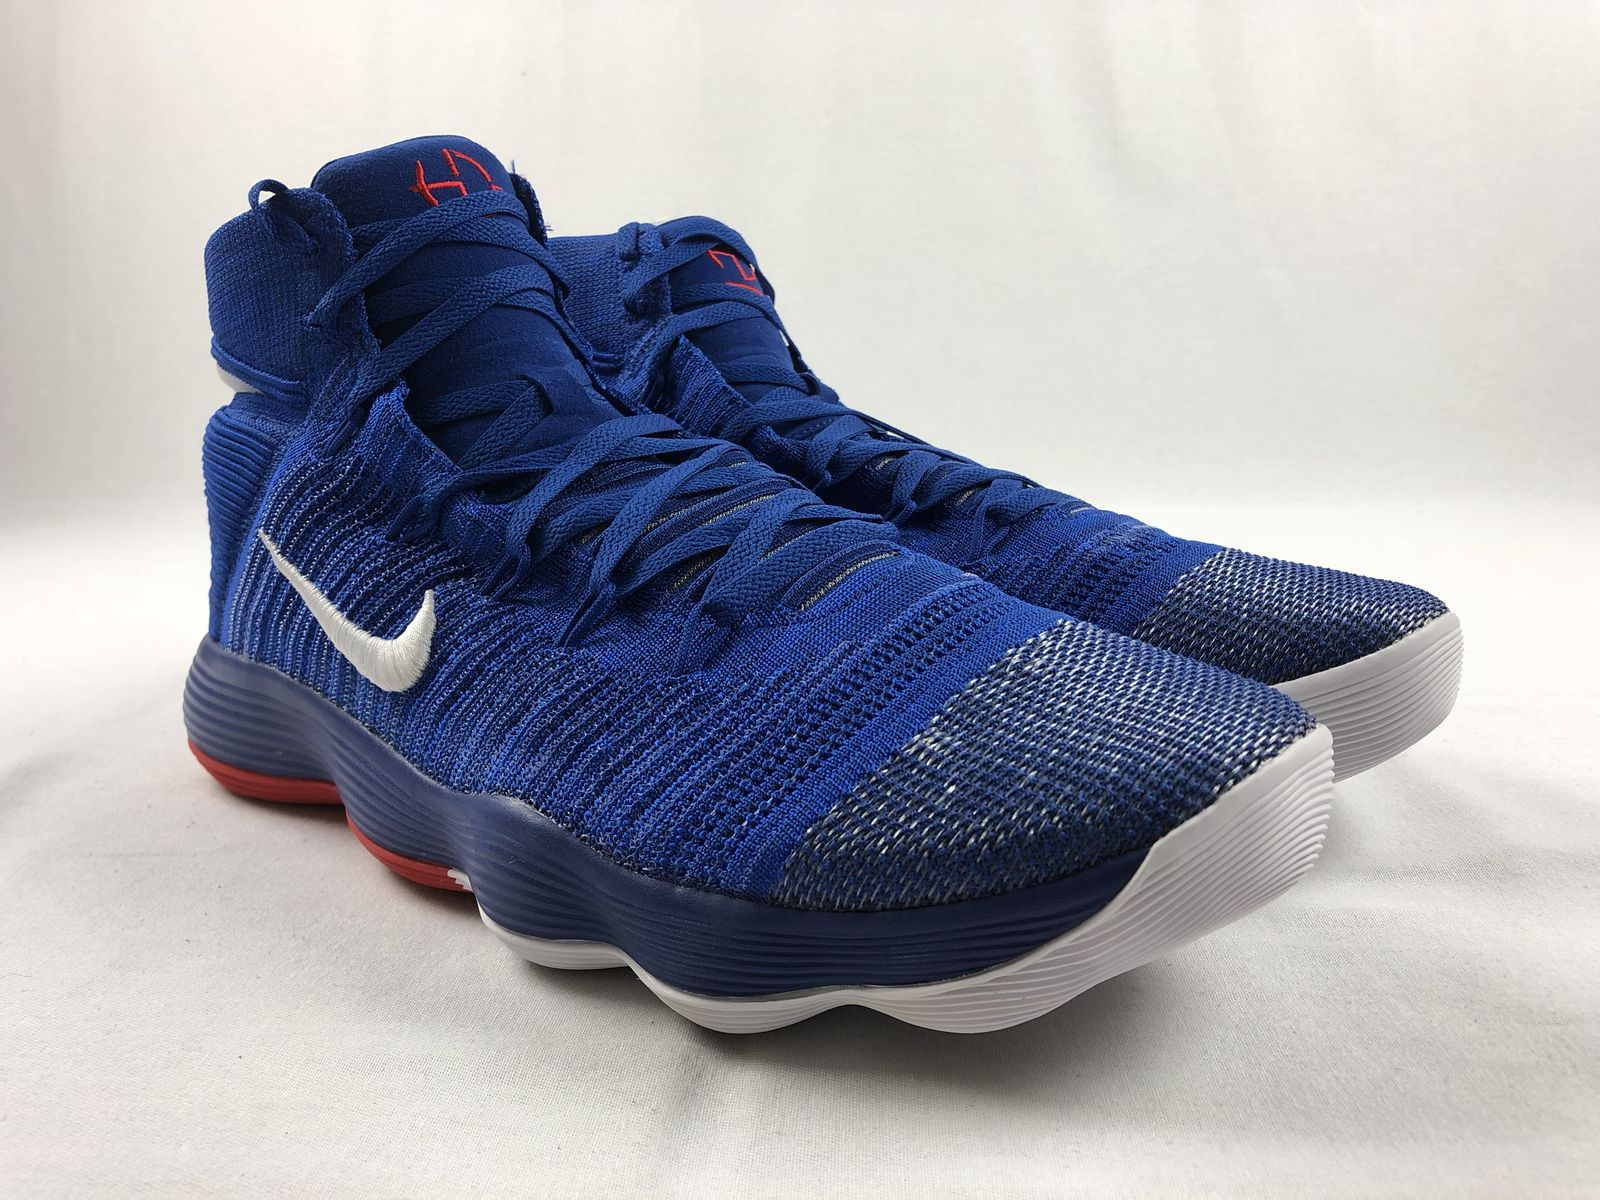 new styles 264e8 cd73e Details about NEW Nike Hyperdunk 2017 Flyknit Promo - Blue Basketball Shoes  (Men s 17.5)